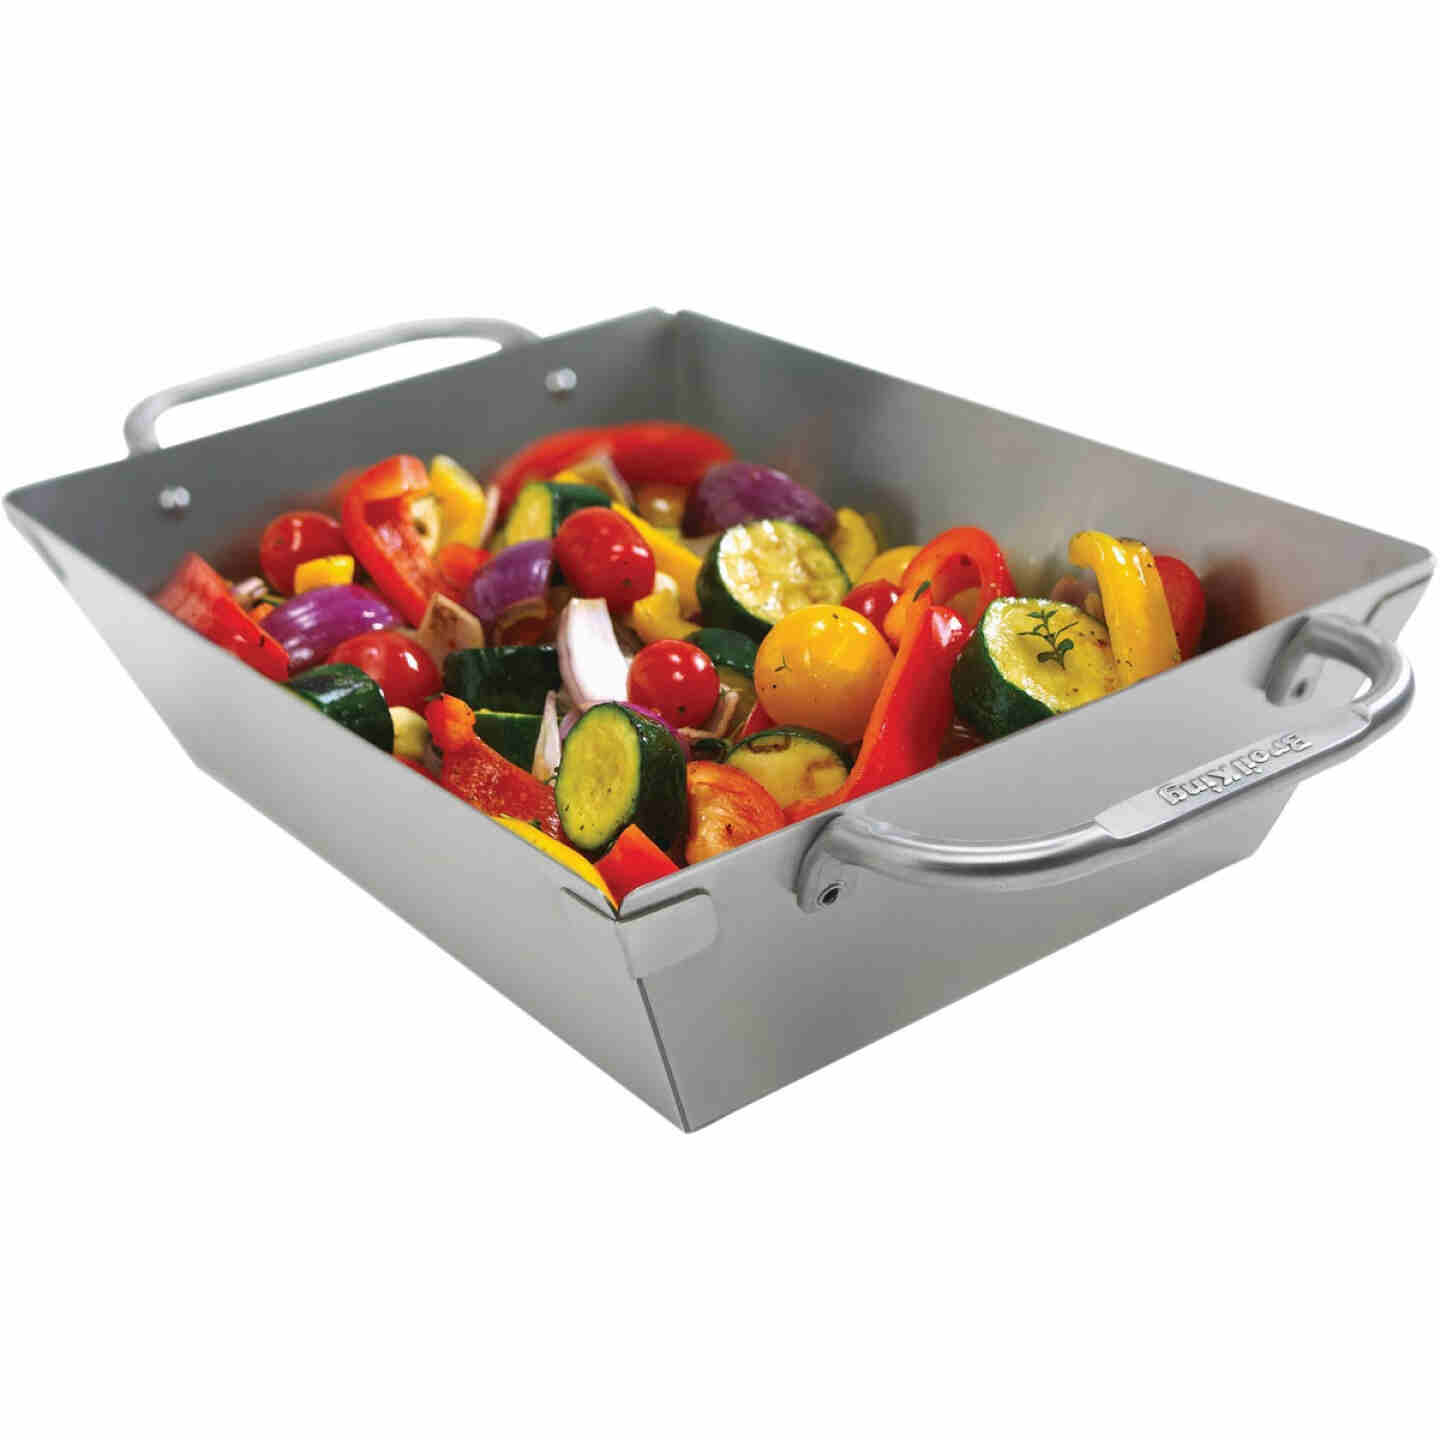 Broil King Imperial 13 In. W. x 9.75 In. L. Stainless Steel Grill Wok Topper Tray Image 1